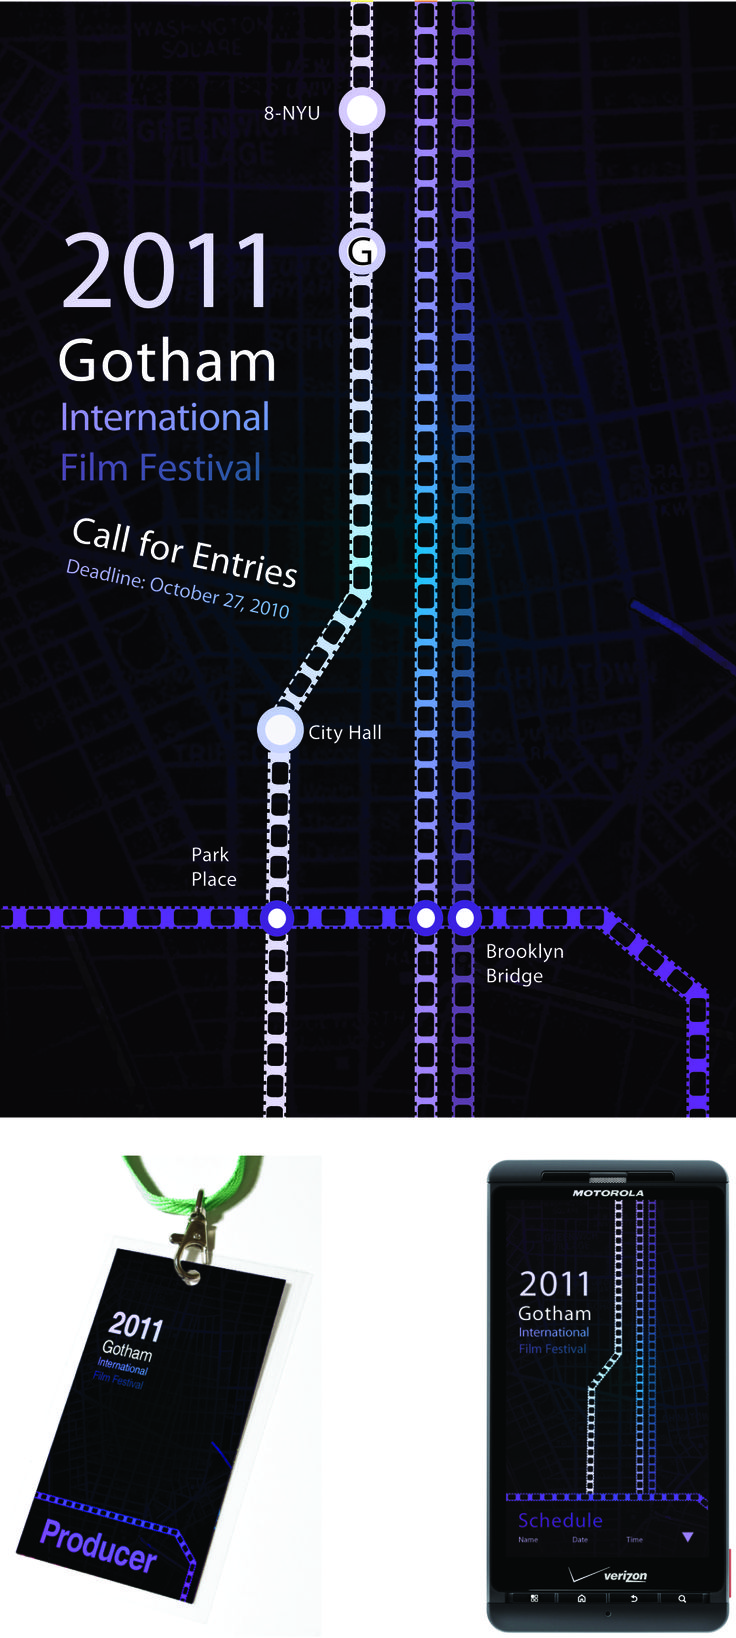 Festival project with Poster, ID Tag and Mobile App